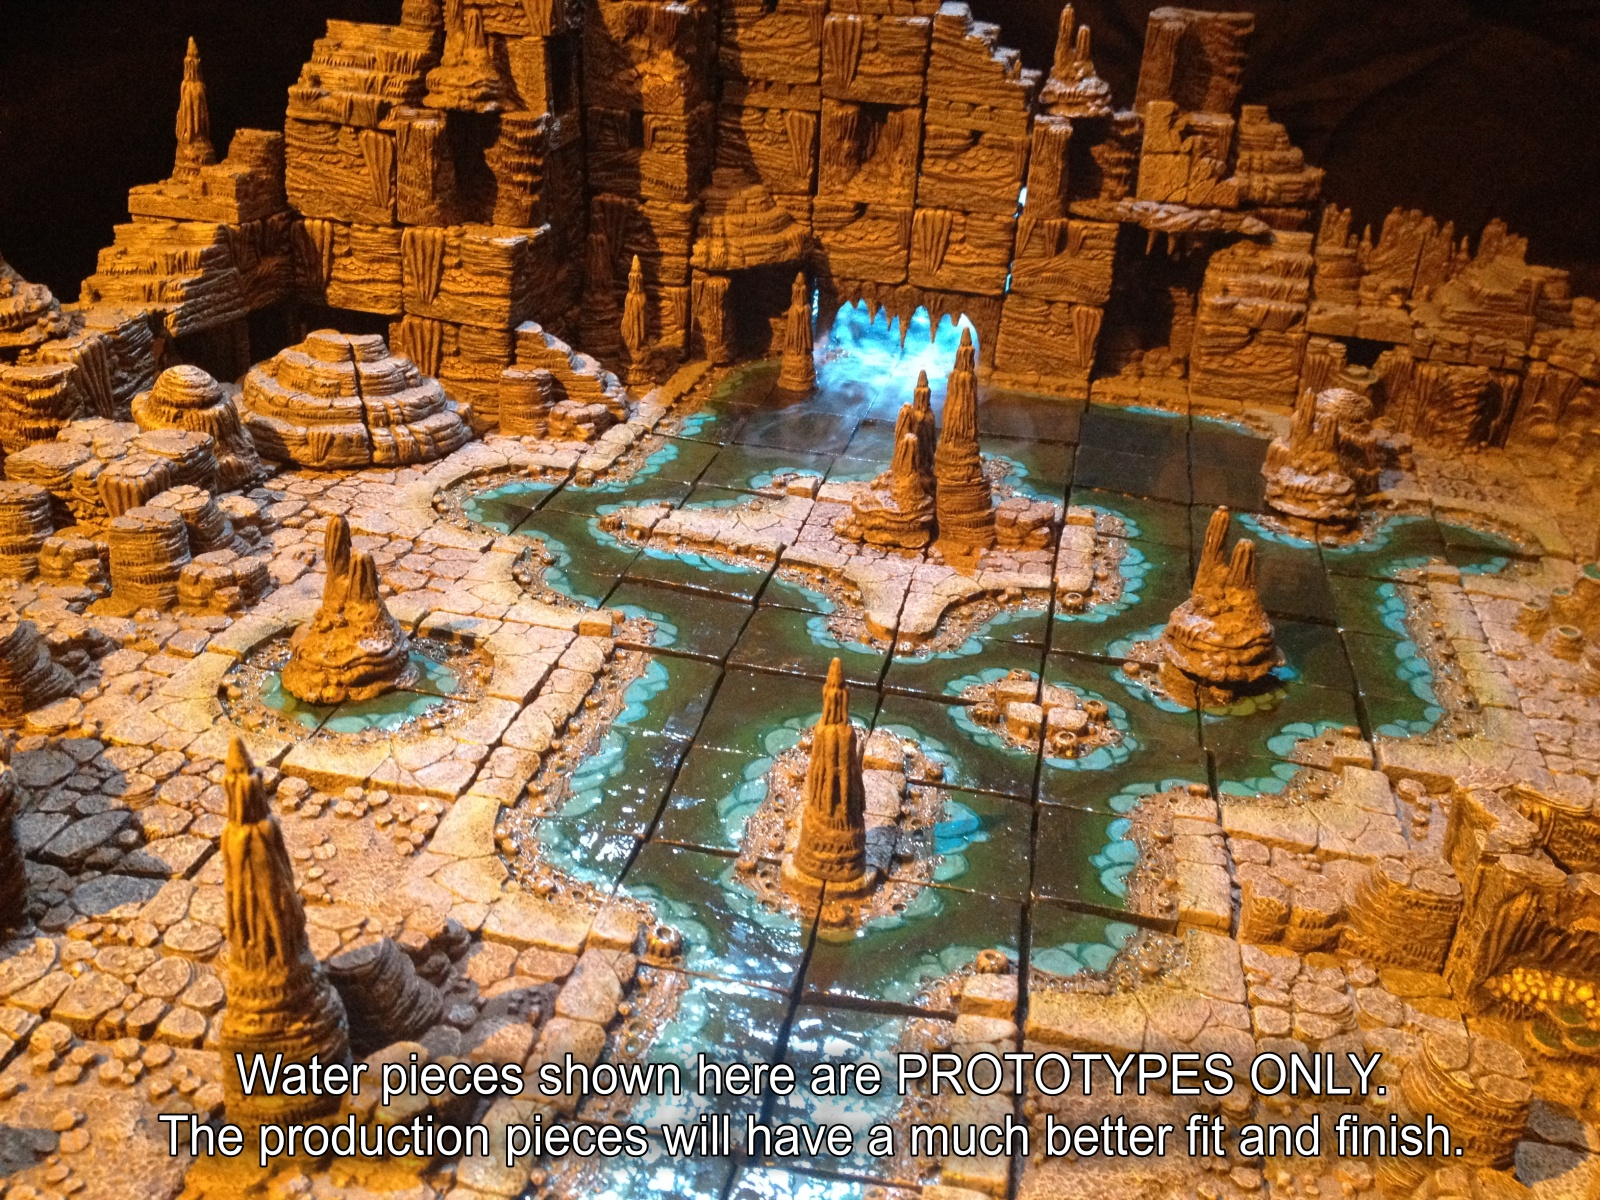 Dwarven Forge Cavern Kickstarter In Its Final Wek